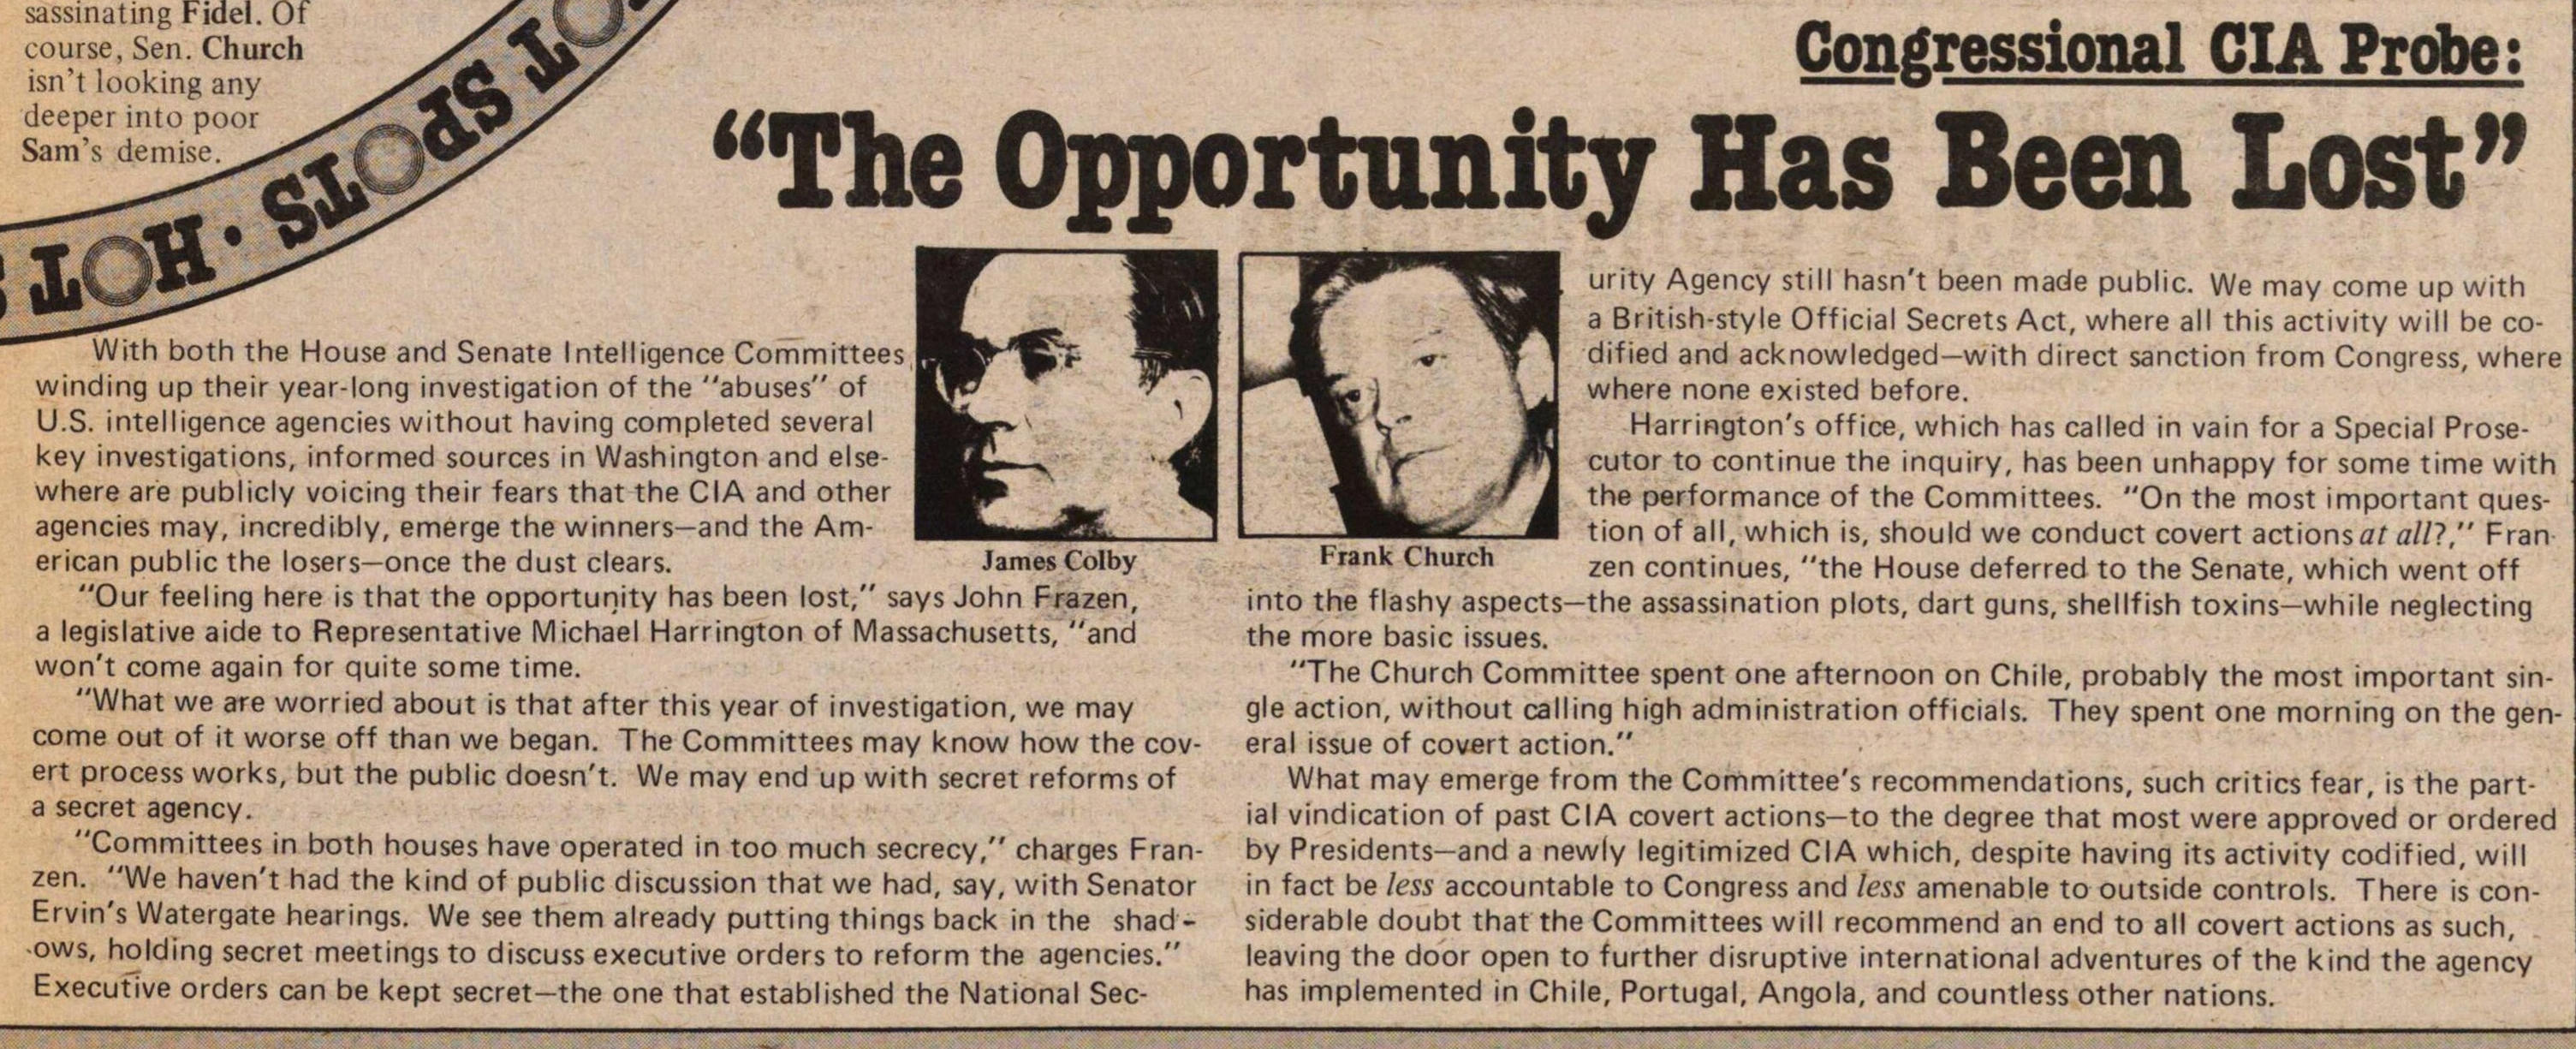 "Congressional Cia Probe ""the Opportunity Has Been Lost"" image"